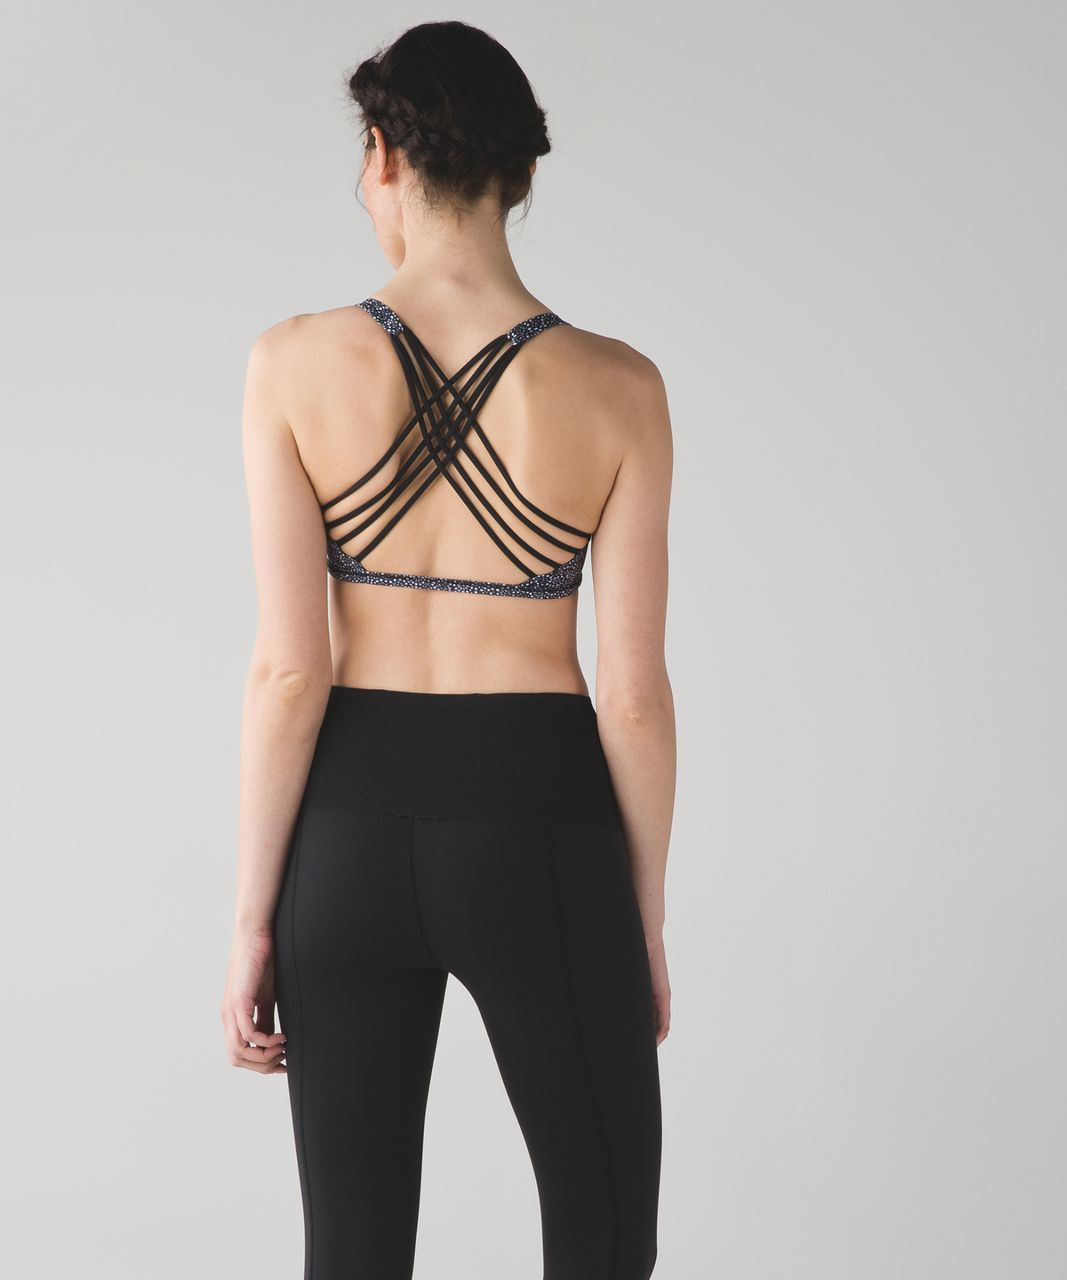 Lululemon Free To Be Bra (Wild) - Freckle Flower Black White / Black